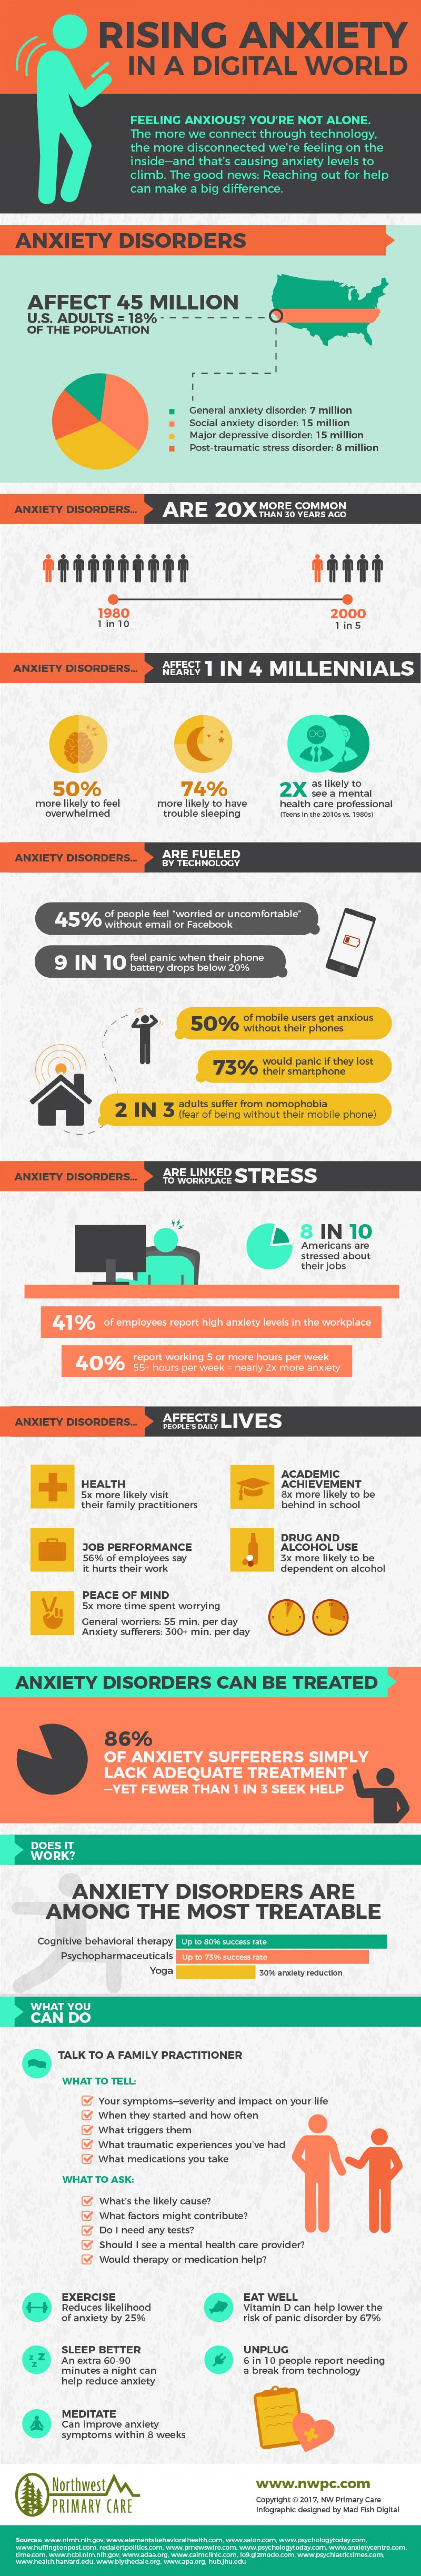 Rising Anxiety in a Digital World Infographic